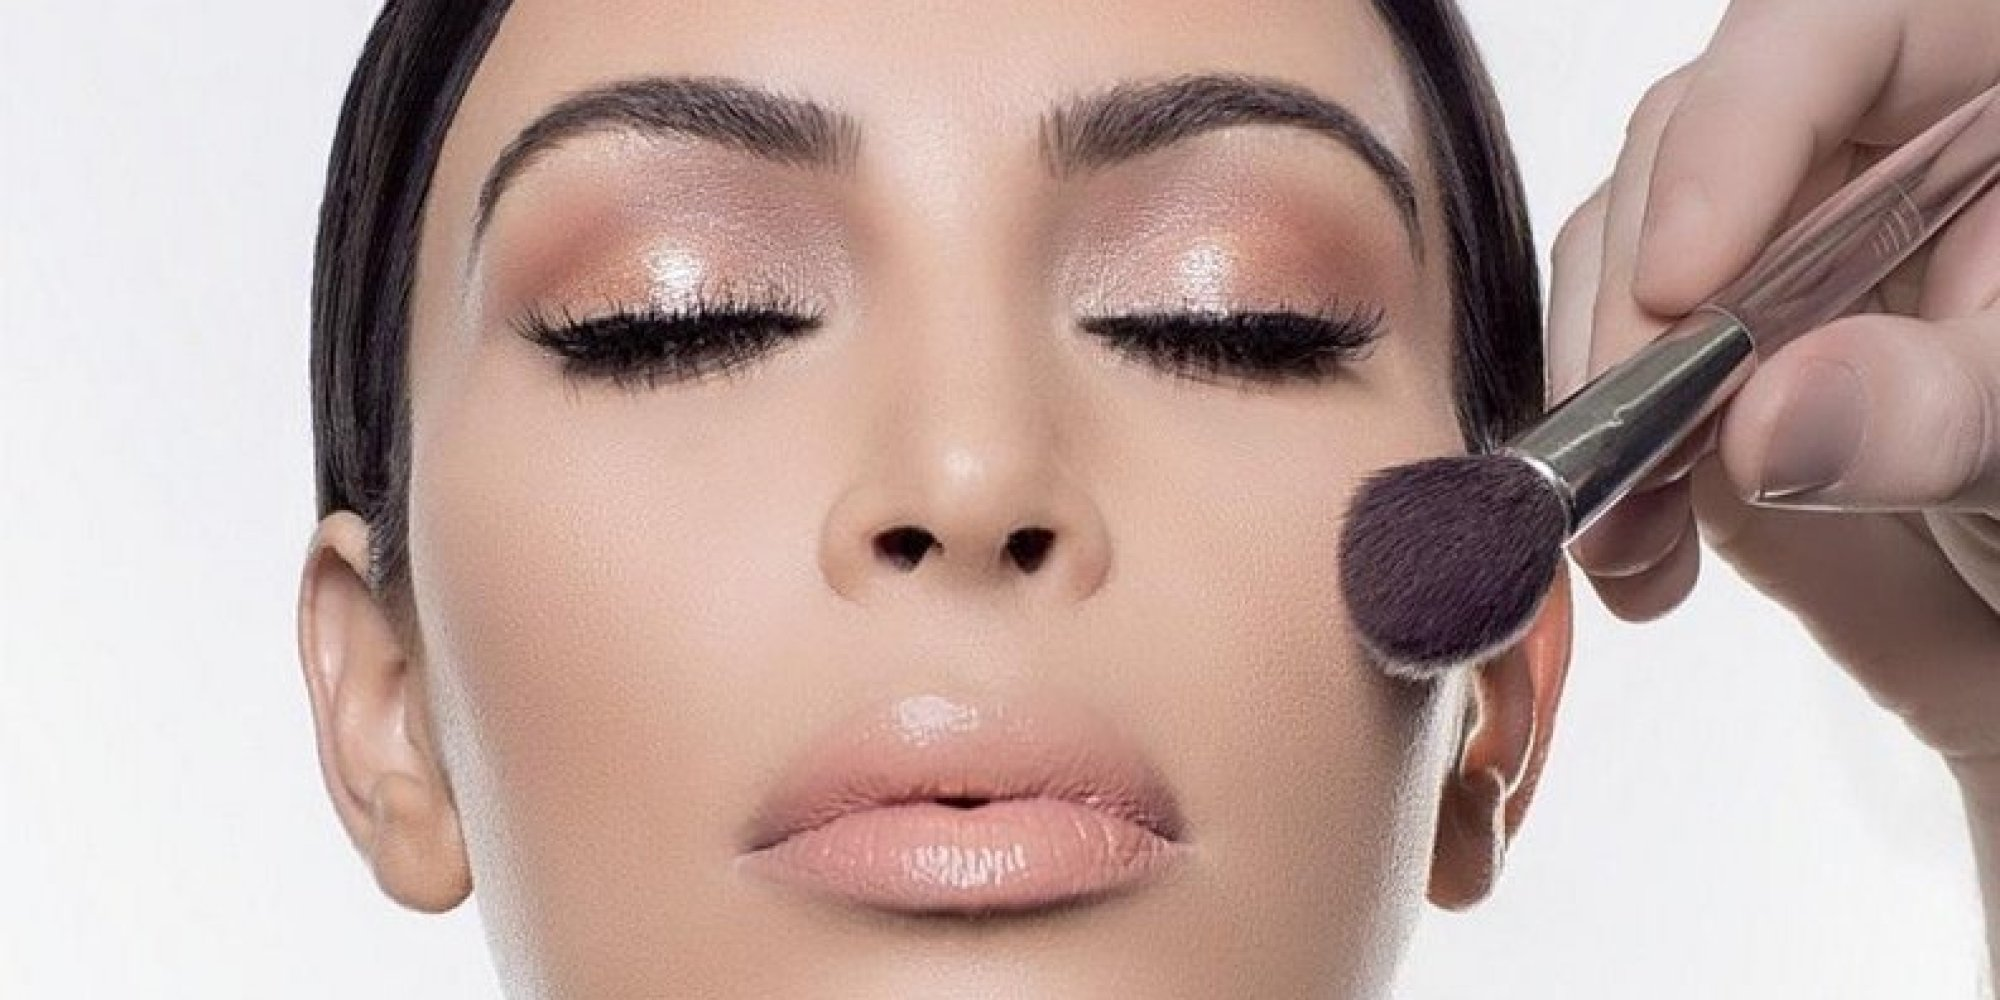 Kim Kardashian's 2 hr Daily Makeup Routine